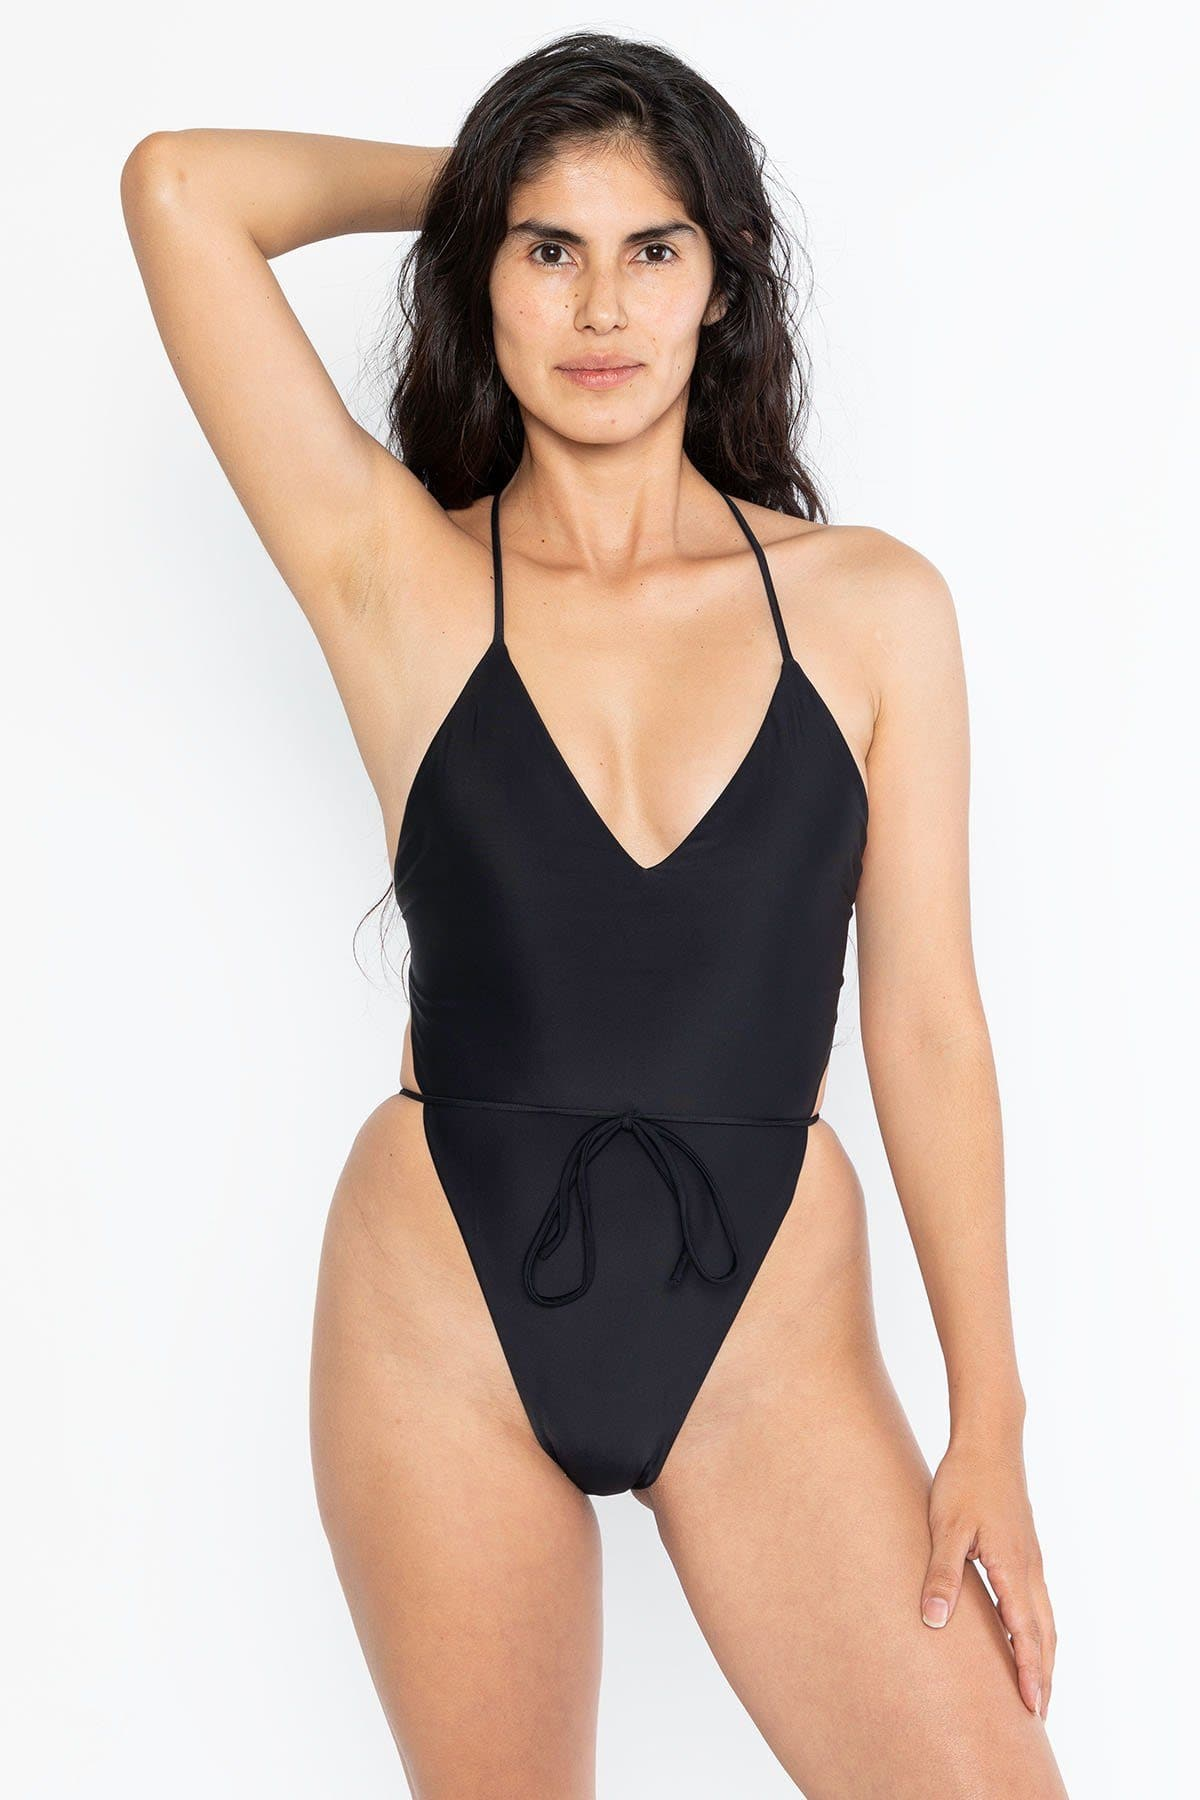 RNT109 - Vintage High Cut One Piece